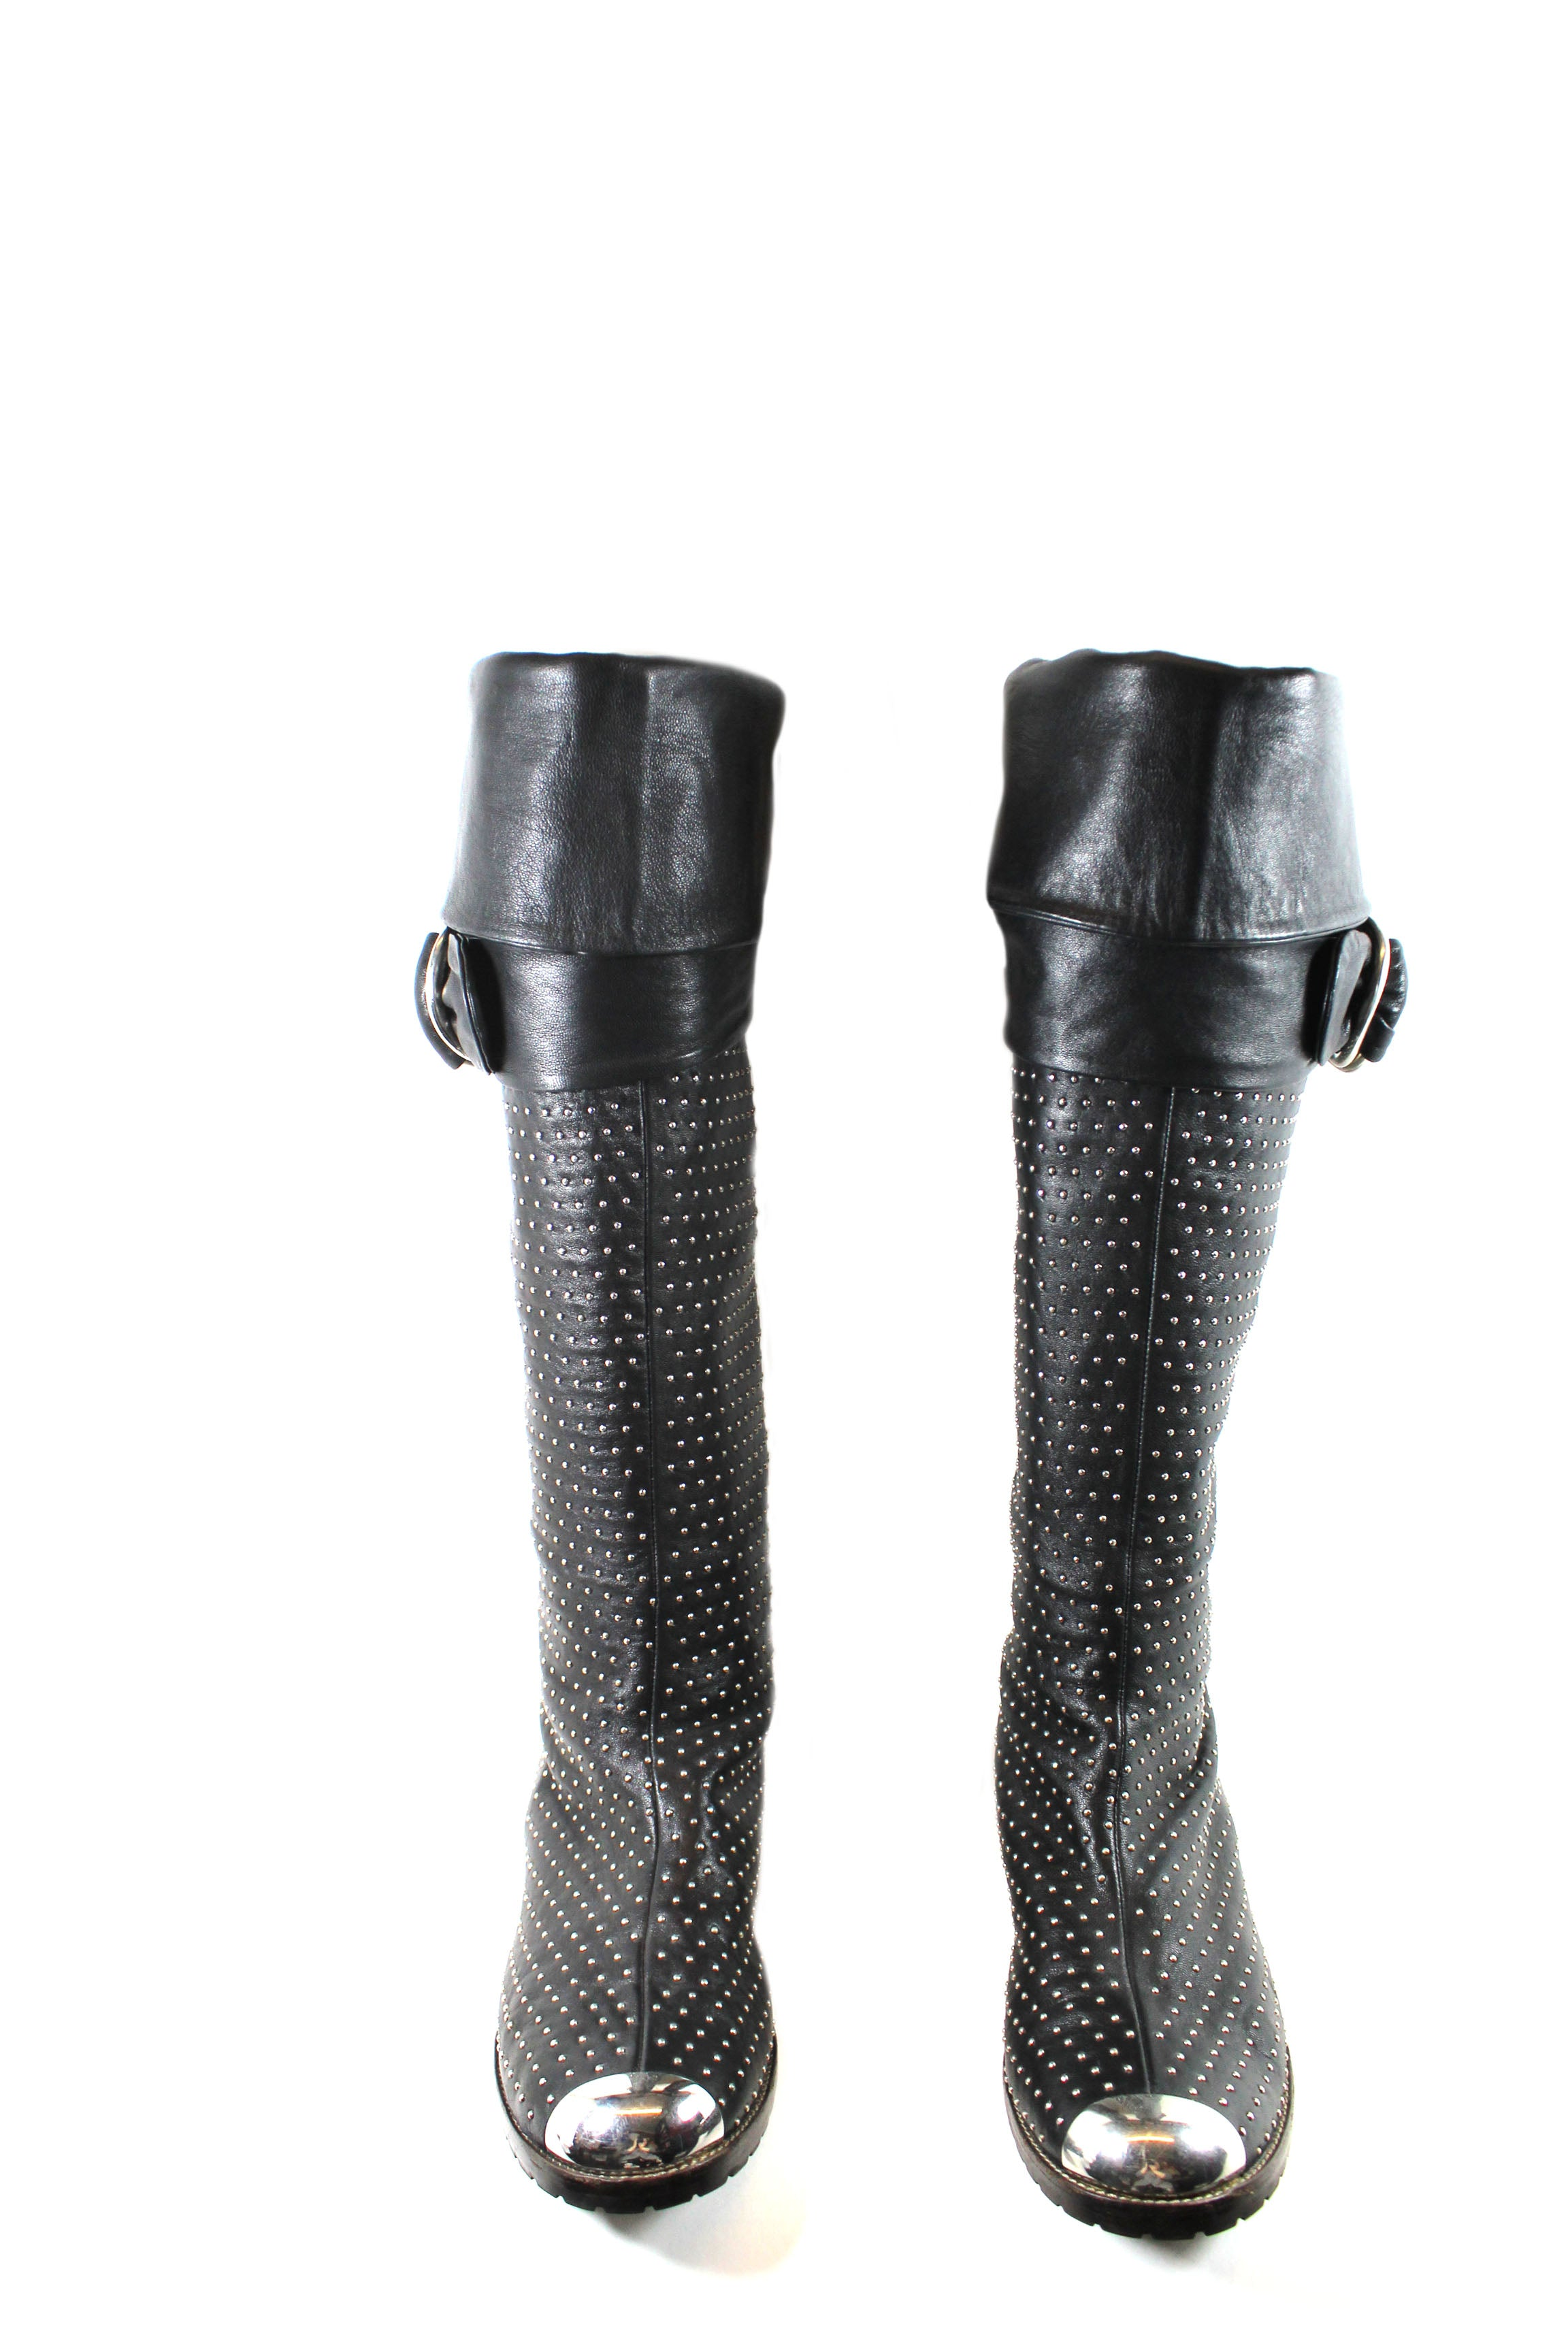 Giuseppe Zanotti Black Leather Studded Boots (Size 41)